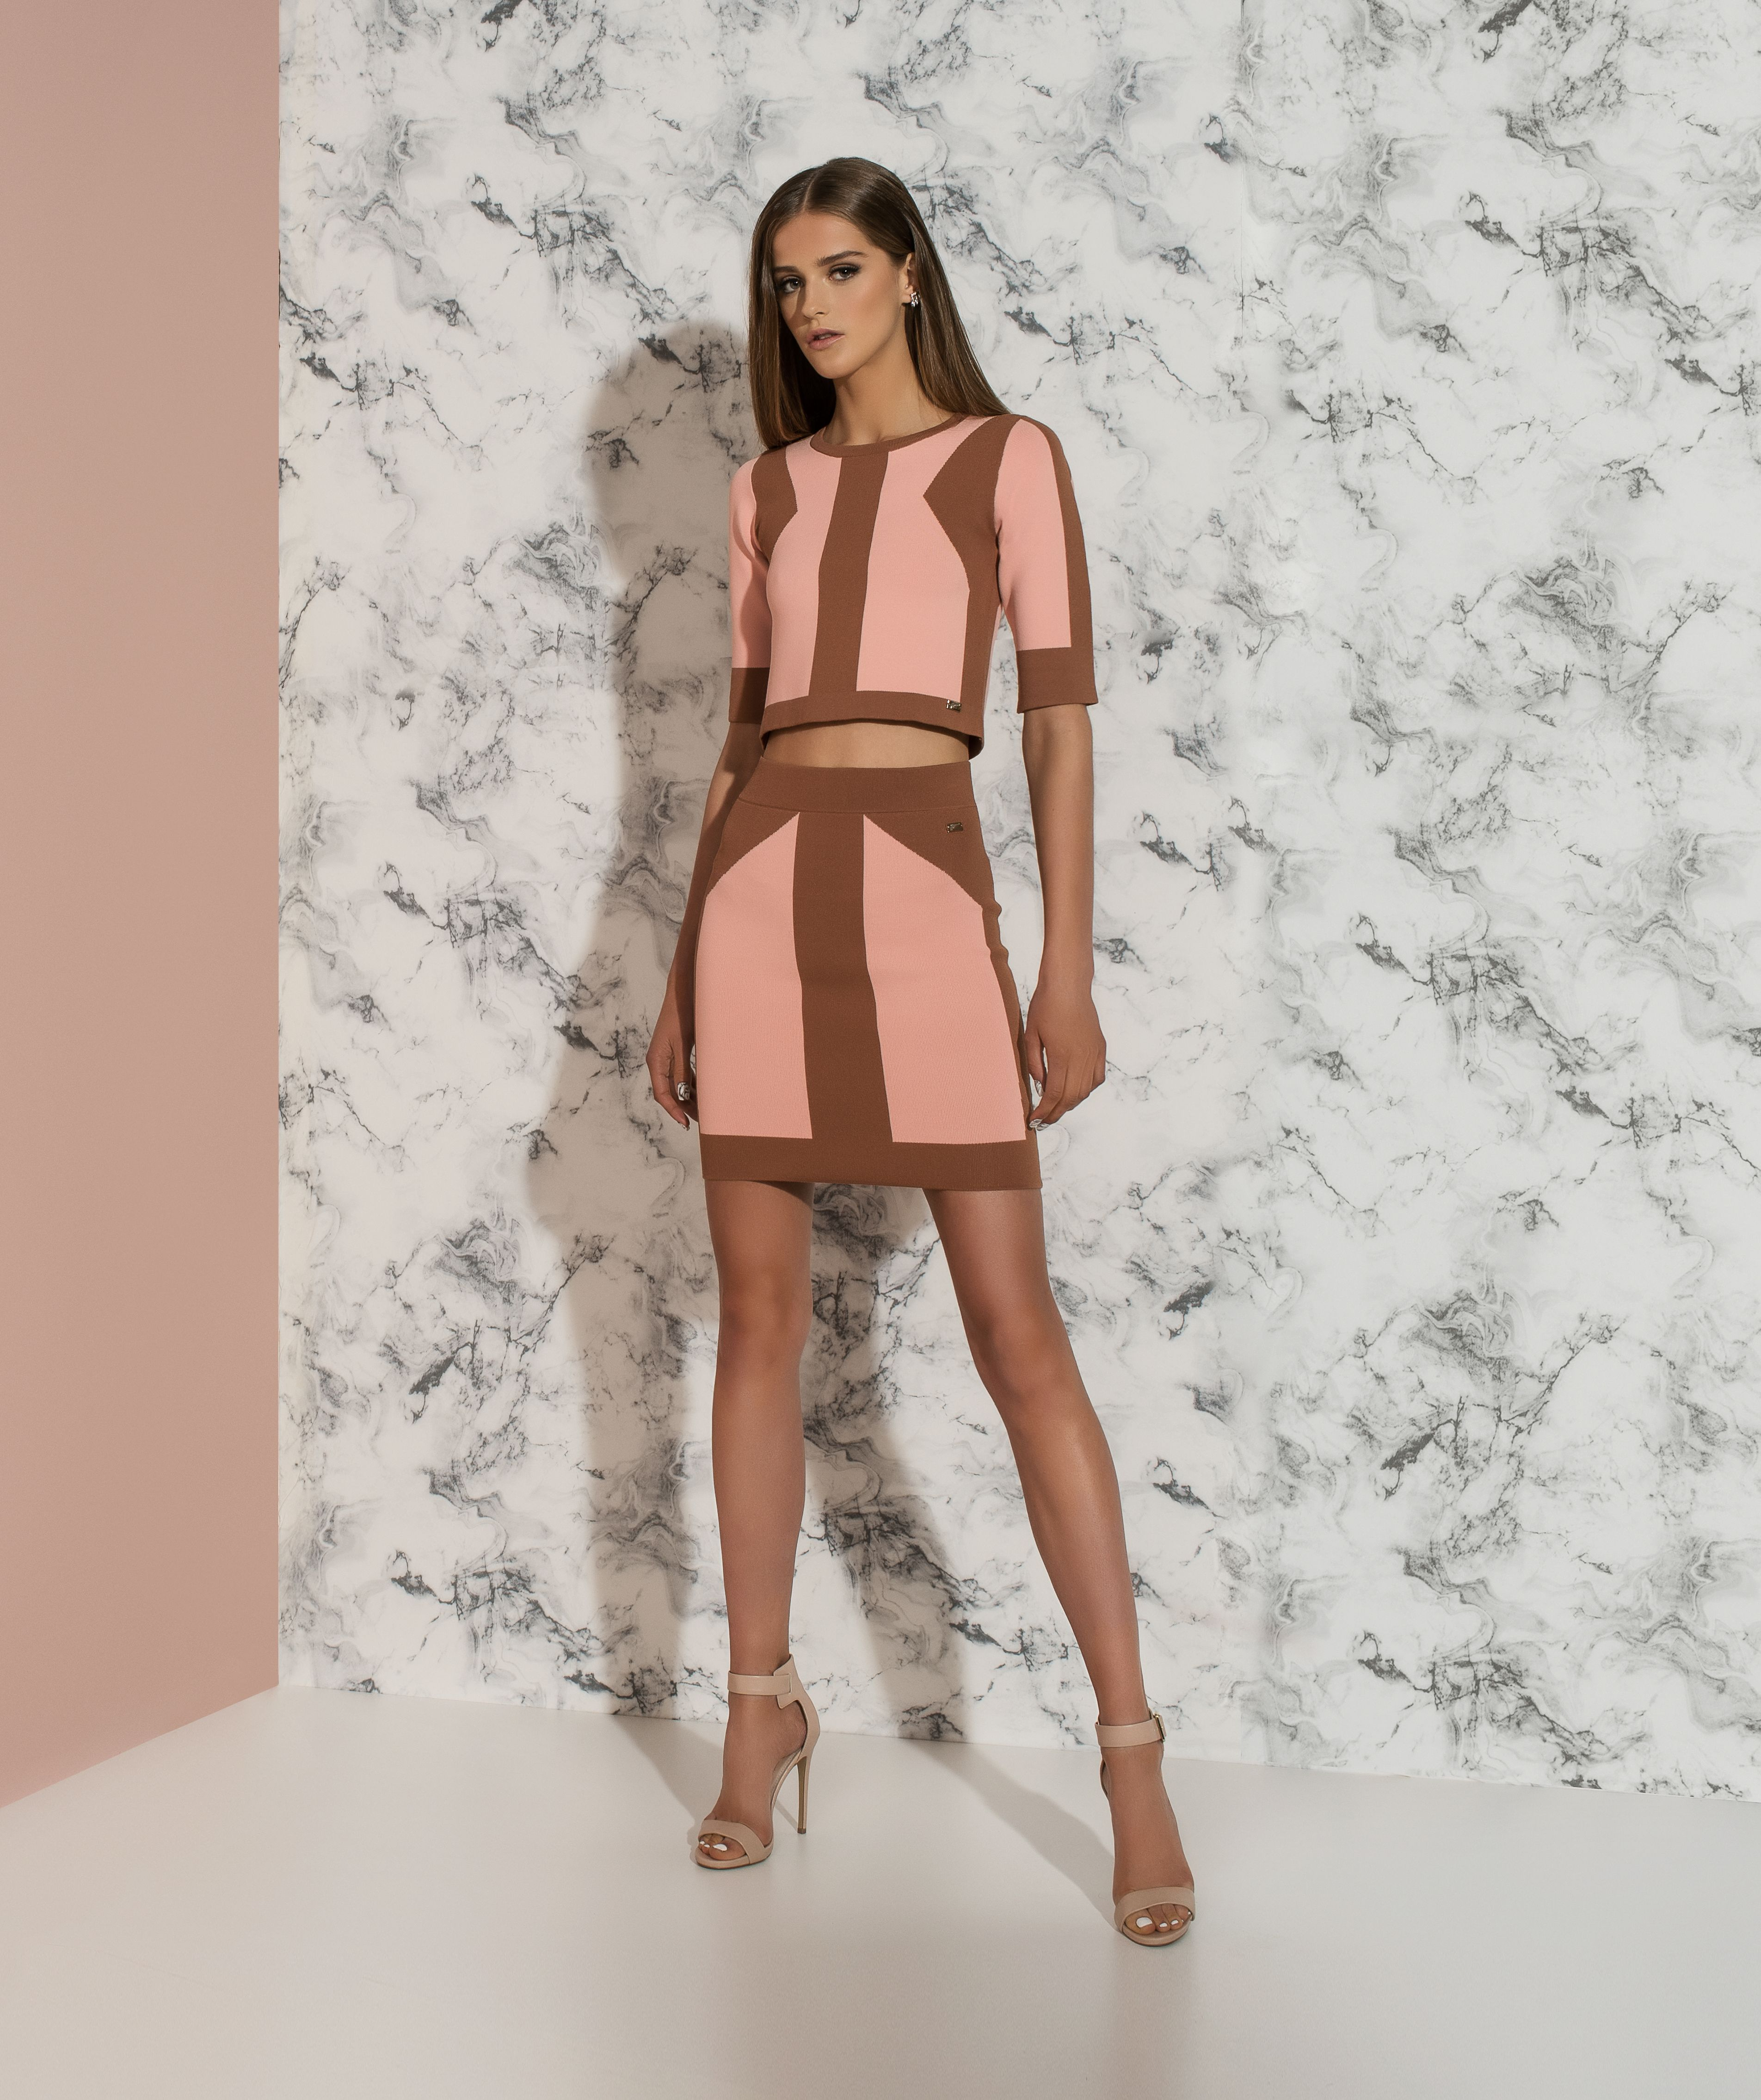 https://joshv.com/eu/clothing-joshv/collection/sixteen-joshv-16 Get on point this season! The sexy JOSH V Lilia crop top and the matching JOSH V Lauren skirt are both characterised by the JOSH V design in contrast colours. Combine this two piece dress with a pair of high heels and some fine jewelry for a festive look. #JOSHV #Top #Skirt #Twopiece #Dress #Heels #Summer #Outfit